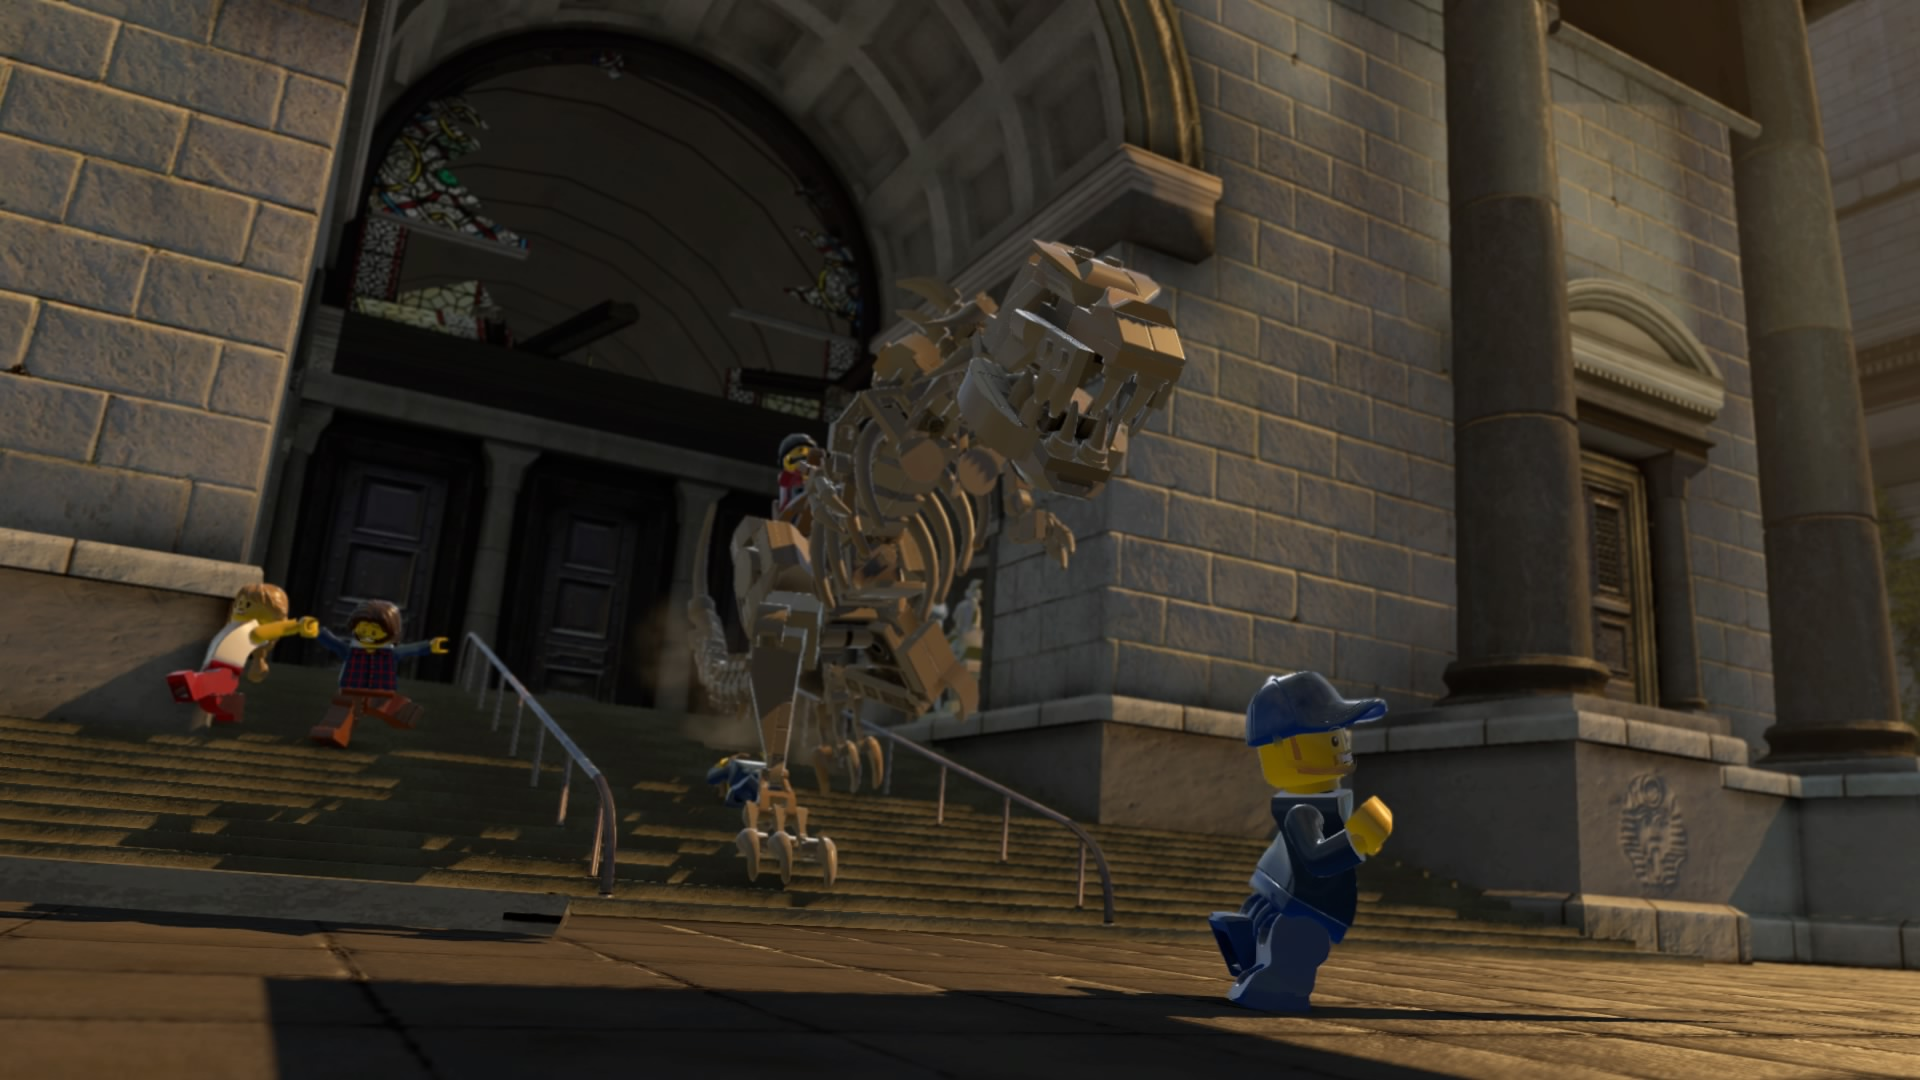 Lego City Undercover Walkthrough Chapter 10 Fire Station Guide Walkthroughs The Escapist